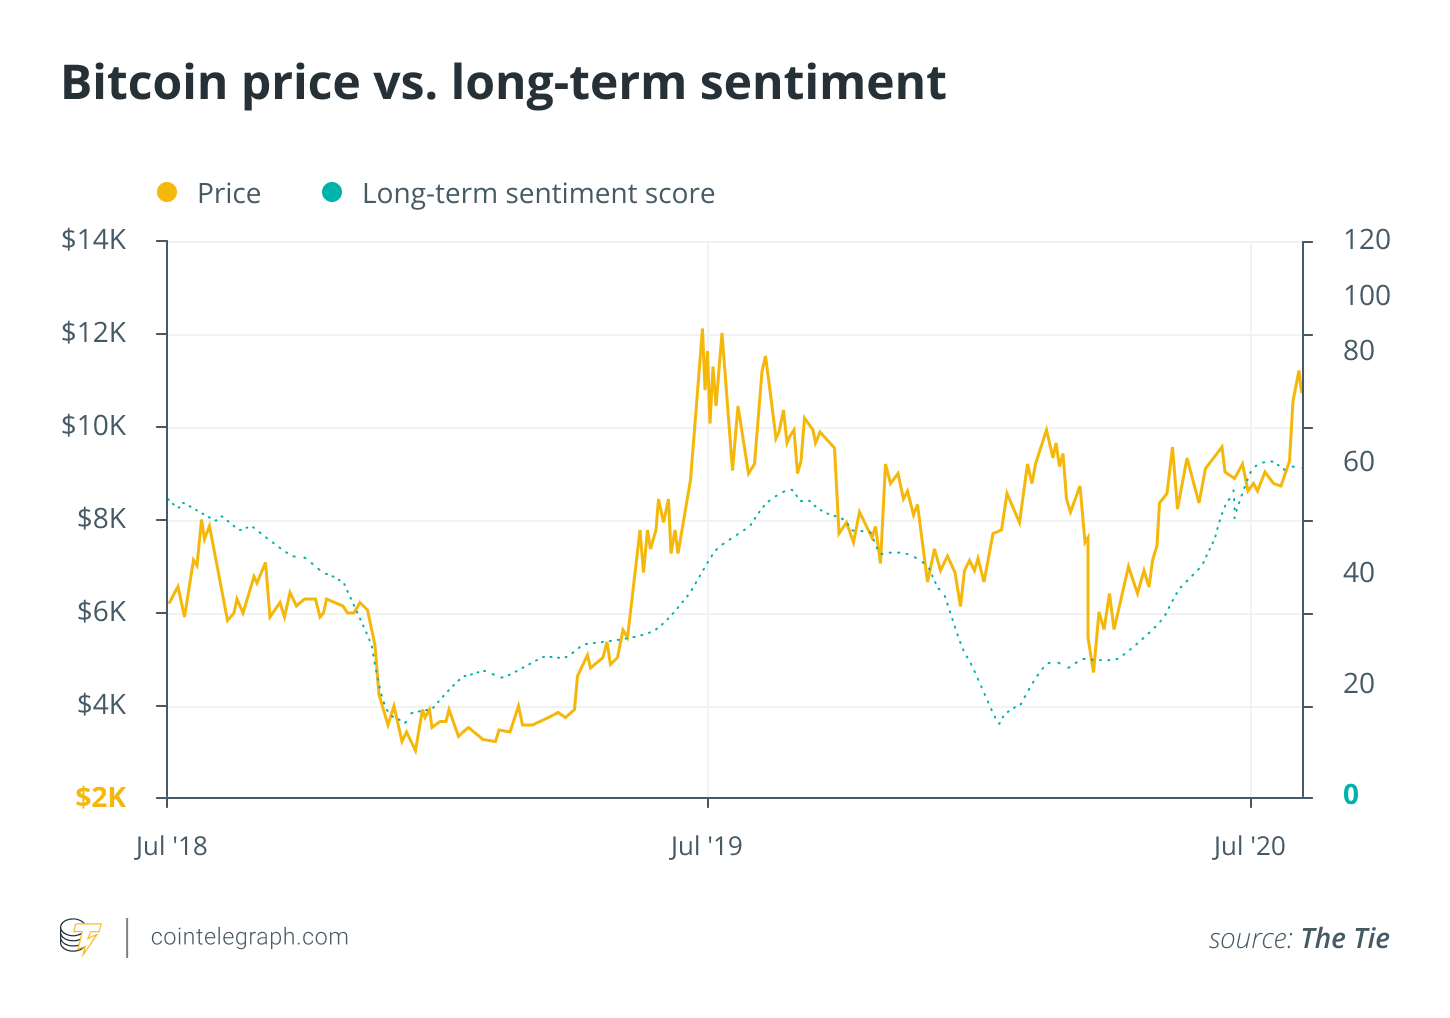 Bitcoin price vs. long-term sentiment score